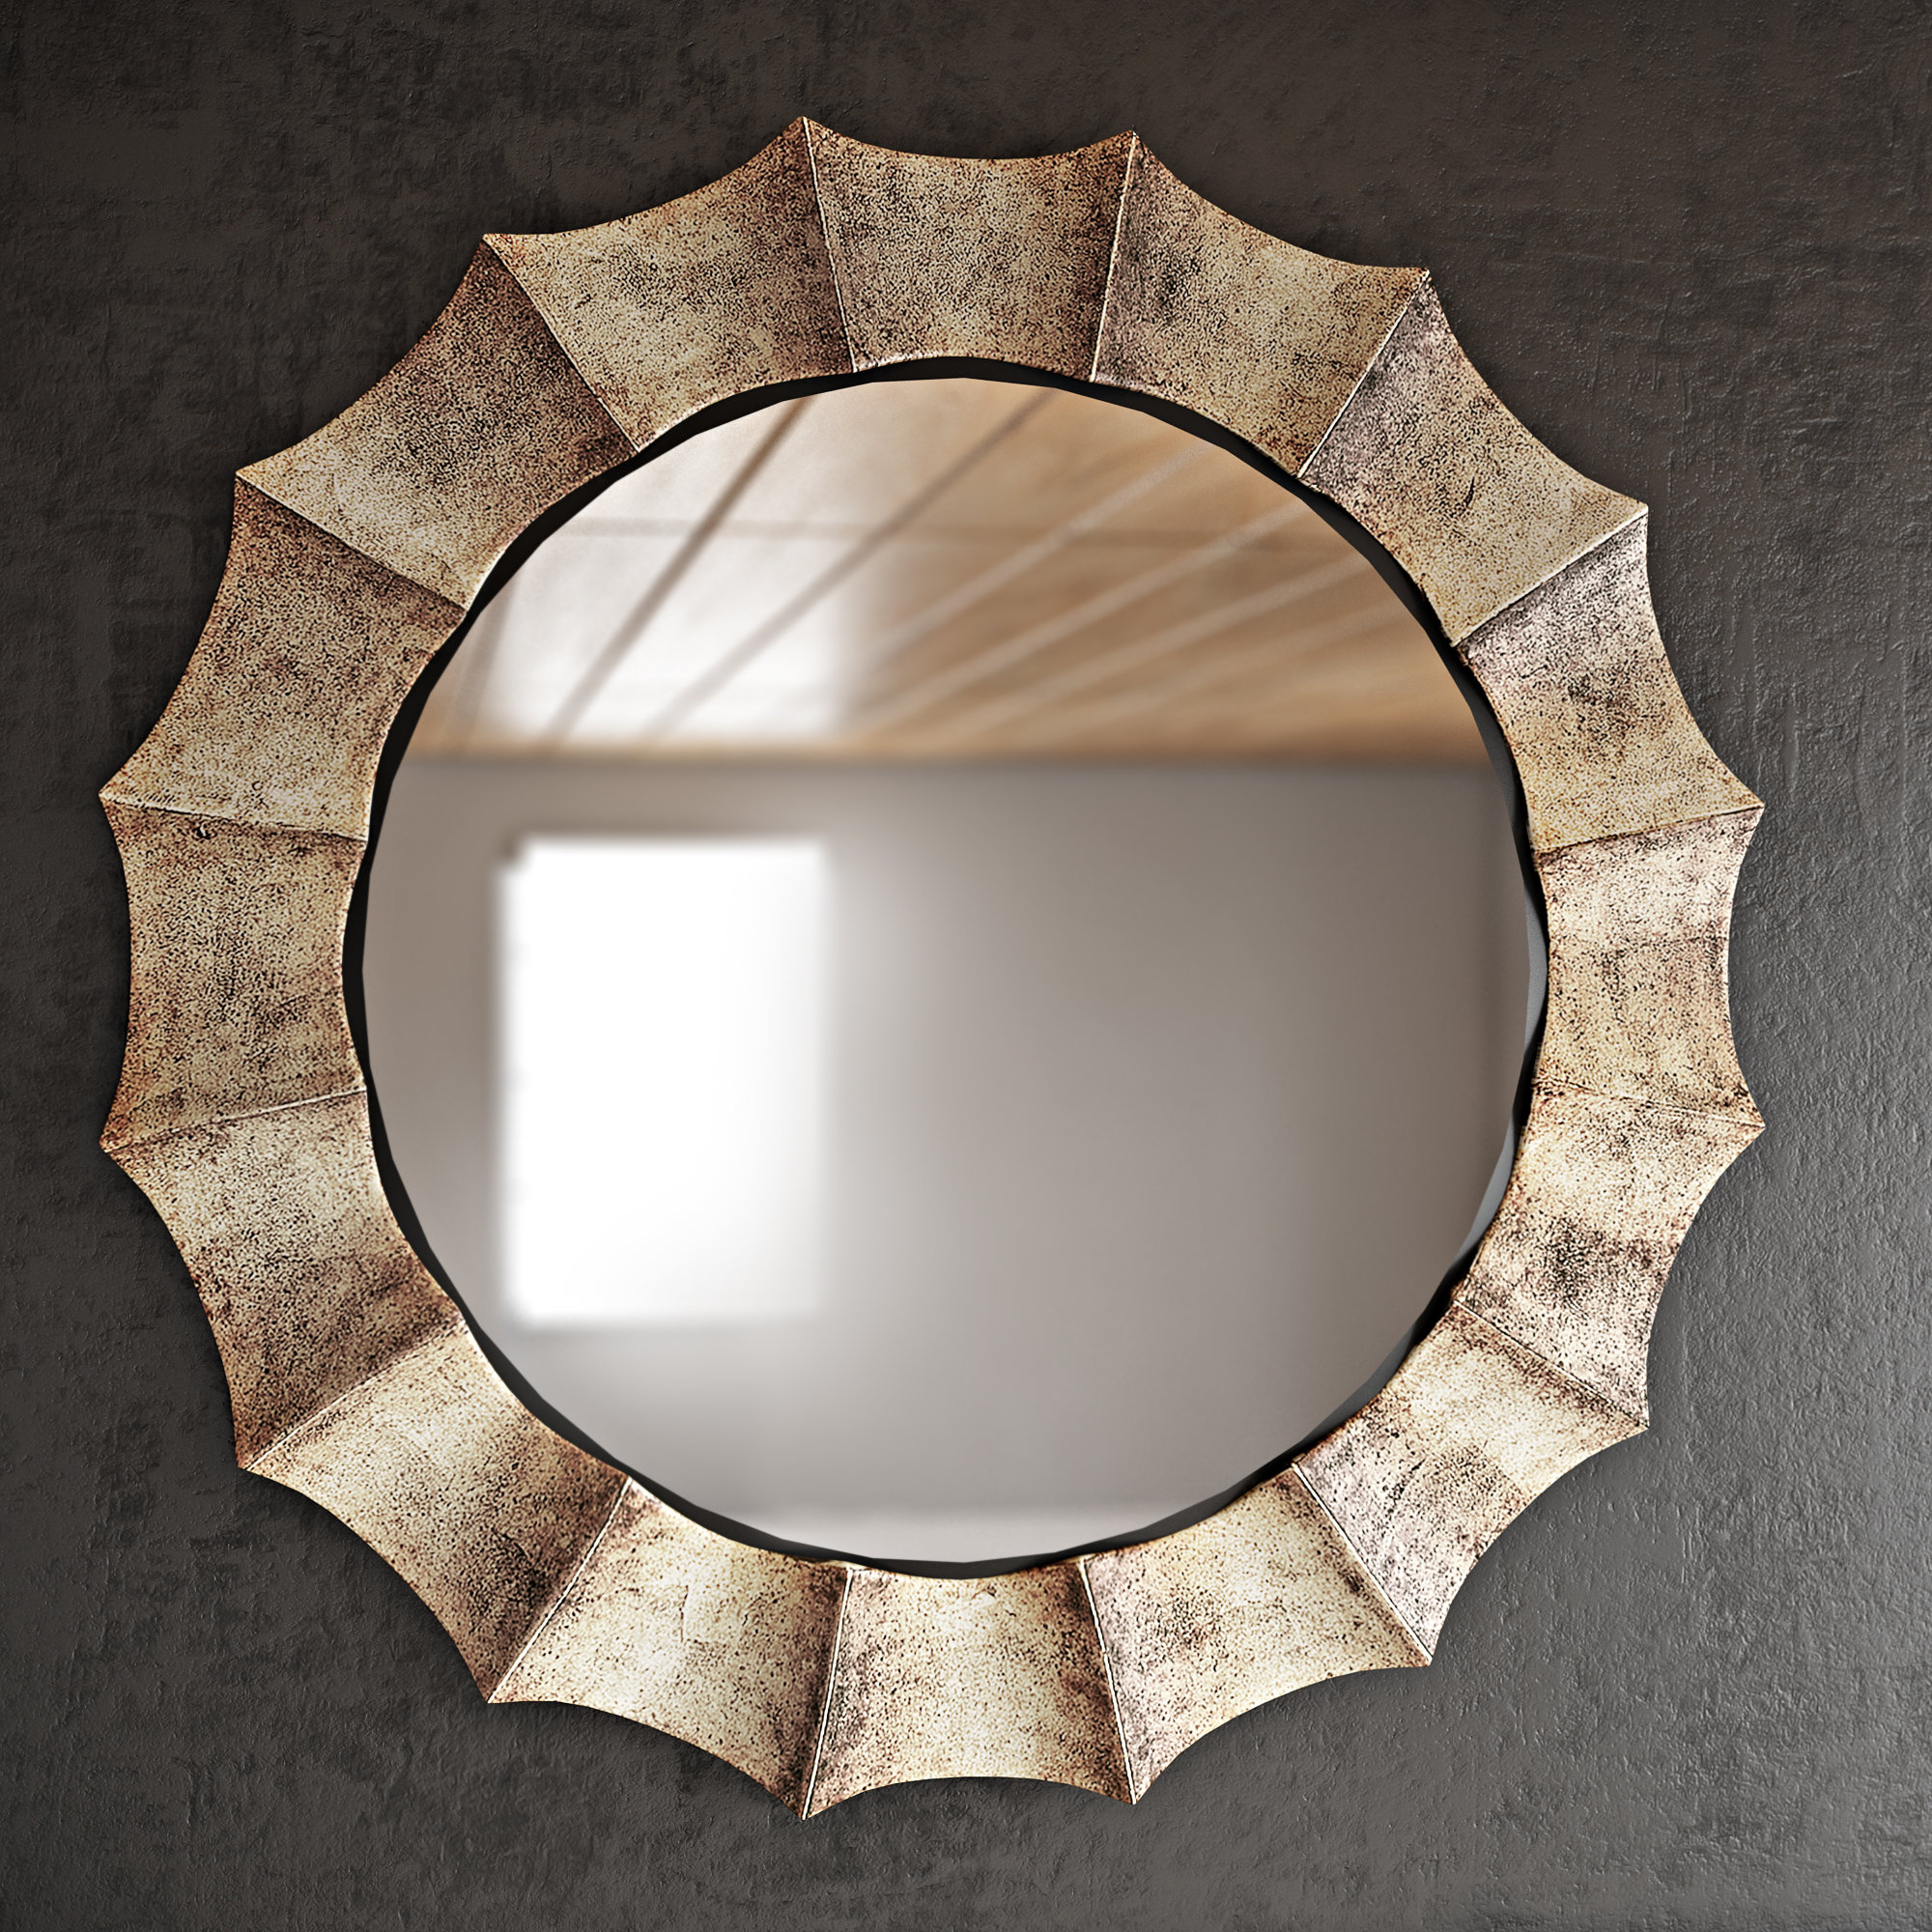 Manuel Vertical Round Wall Mirror Within Popular Vertical Round Wall Mirrors (View 2 of 20)